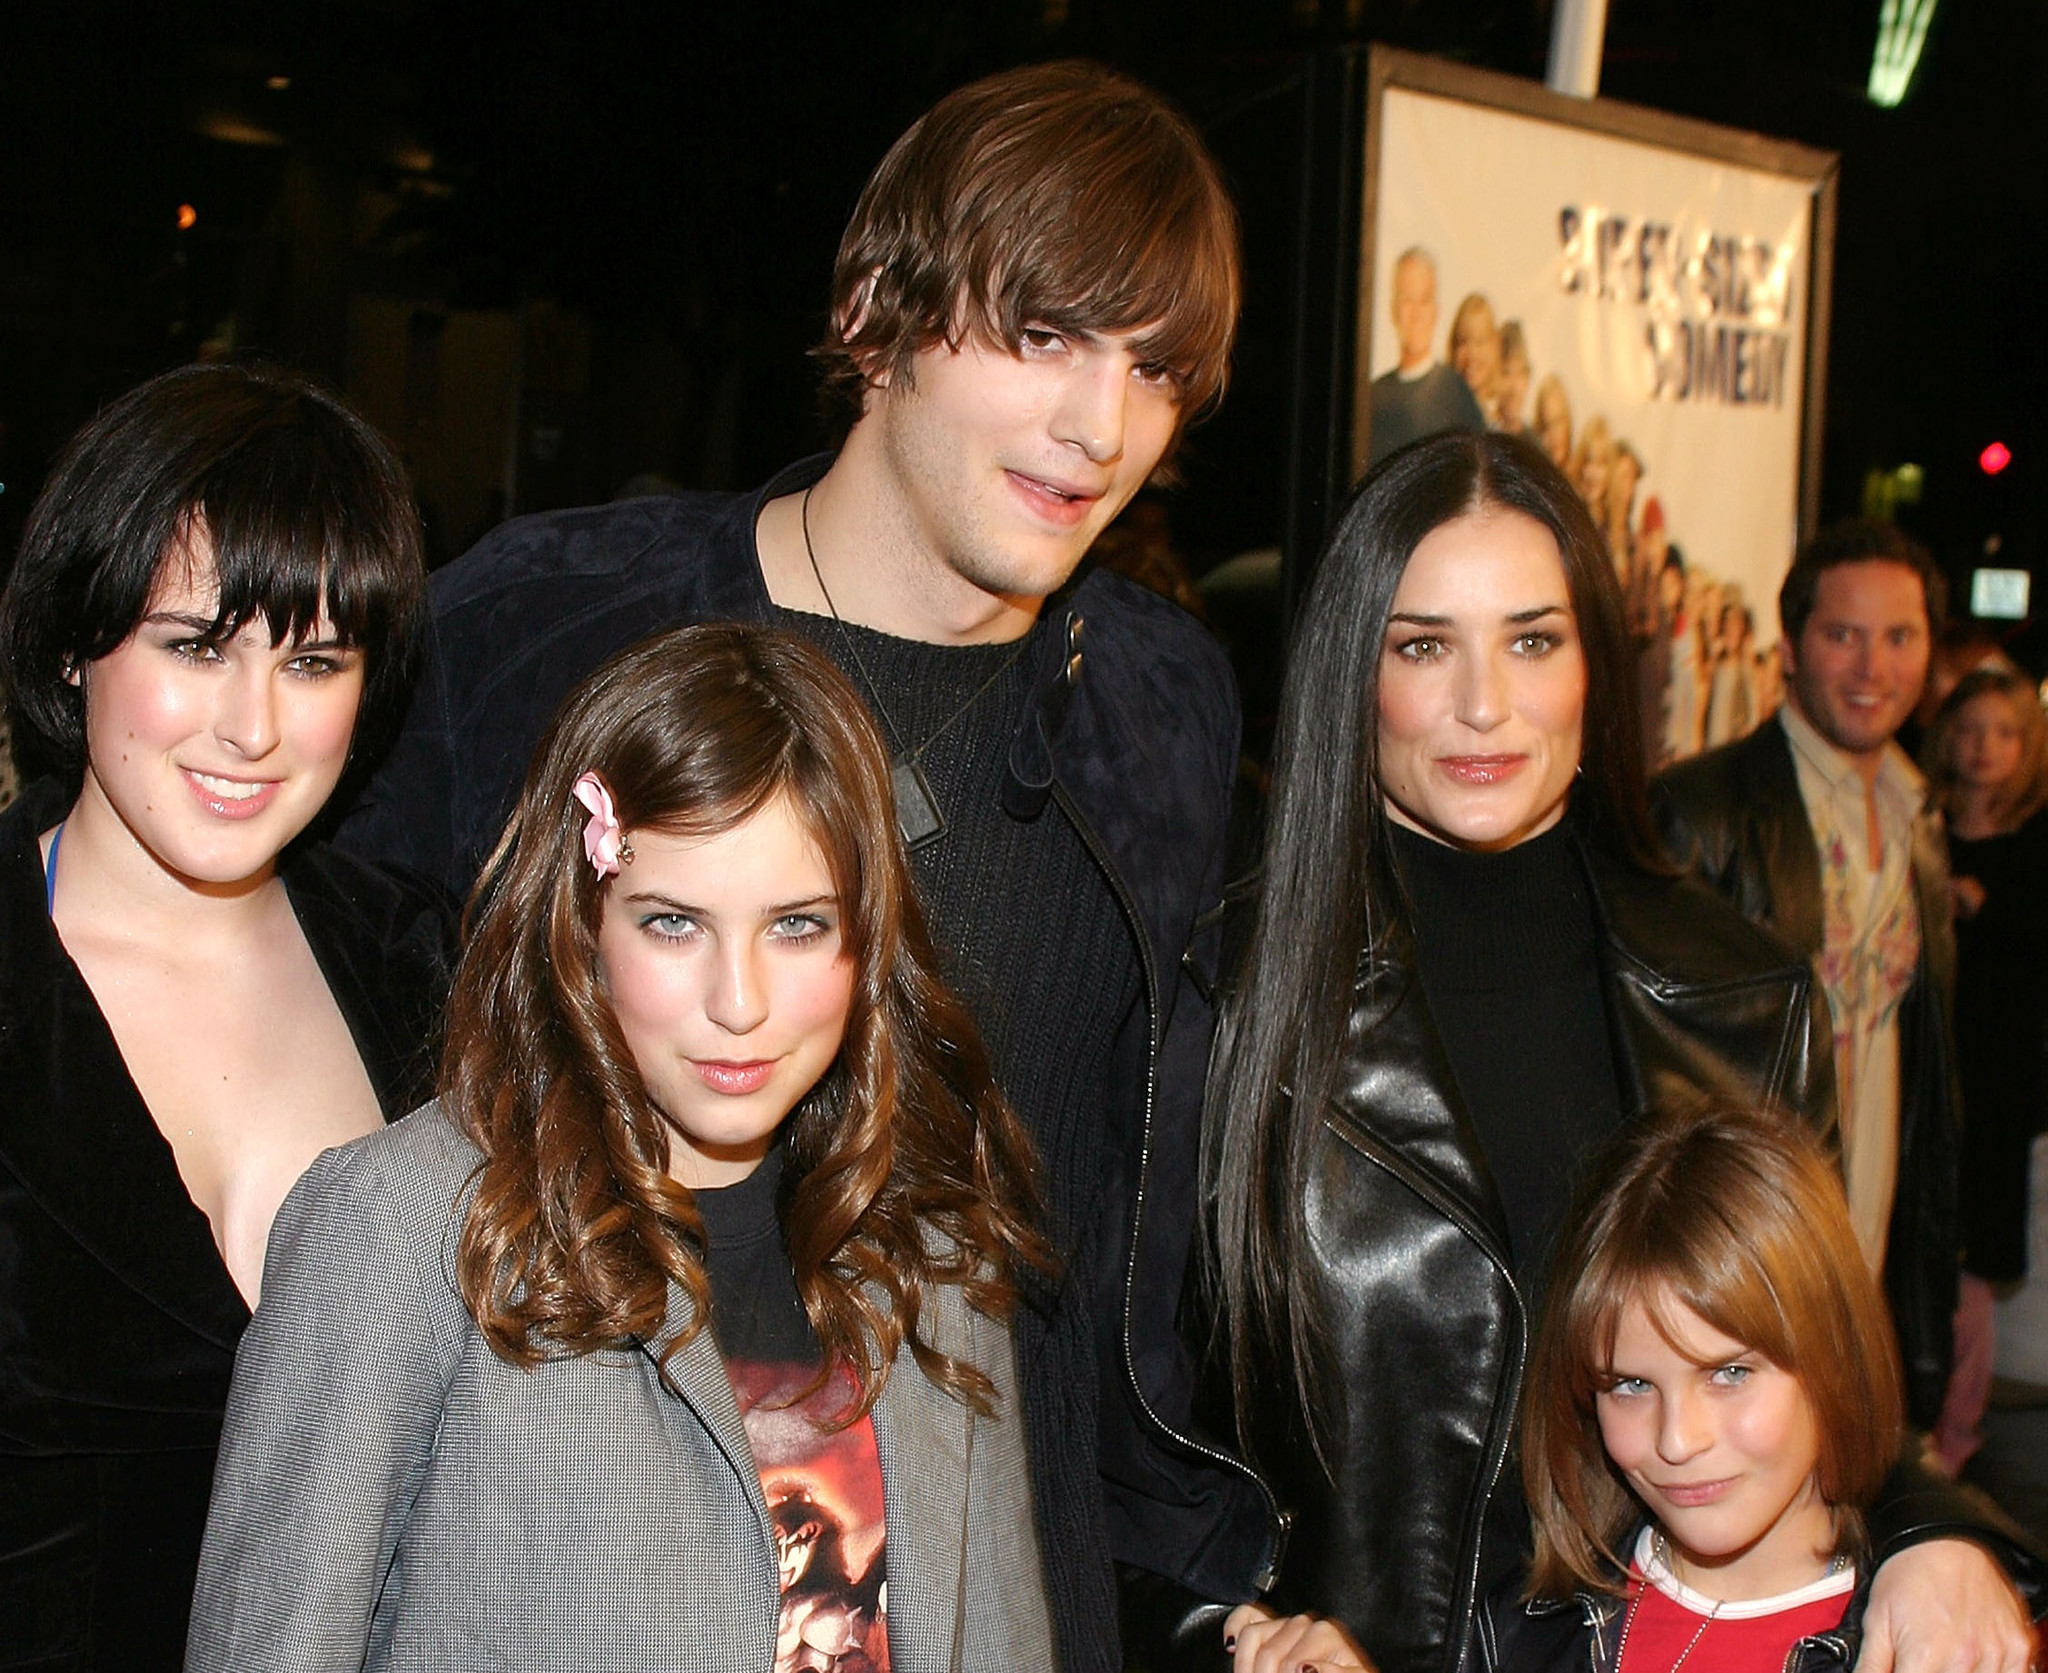 Ashton Kutcher keeps in touch with ex-wife Demi Moore's daughters: 'I'm never going to stop loving them'